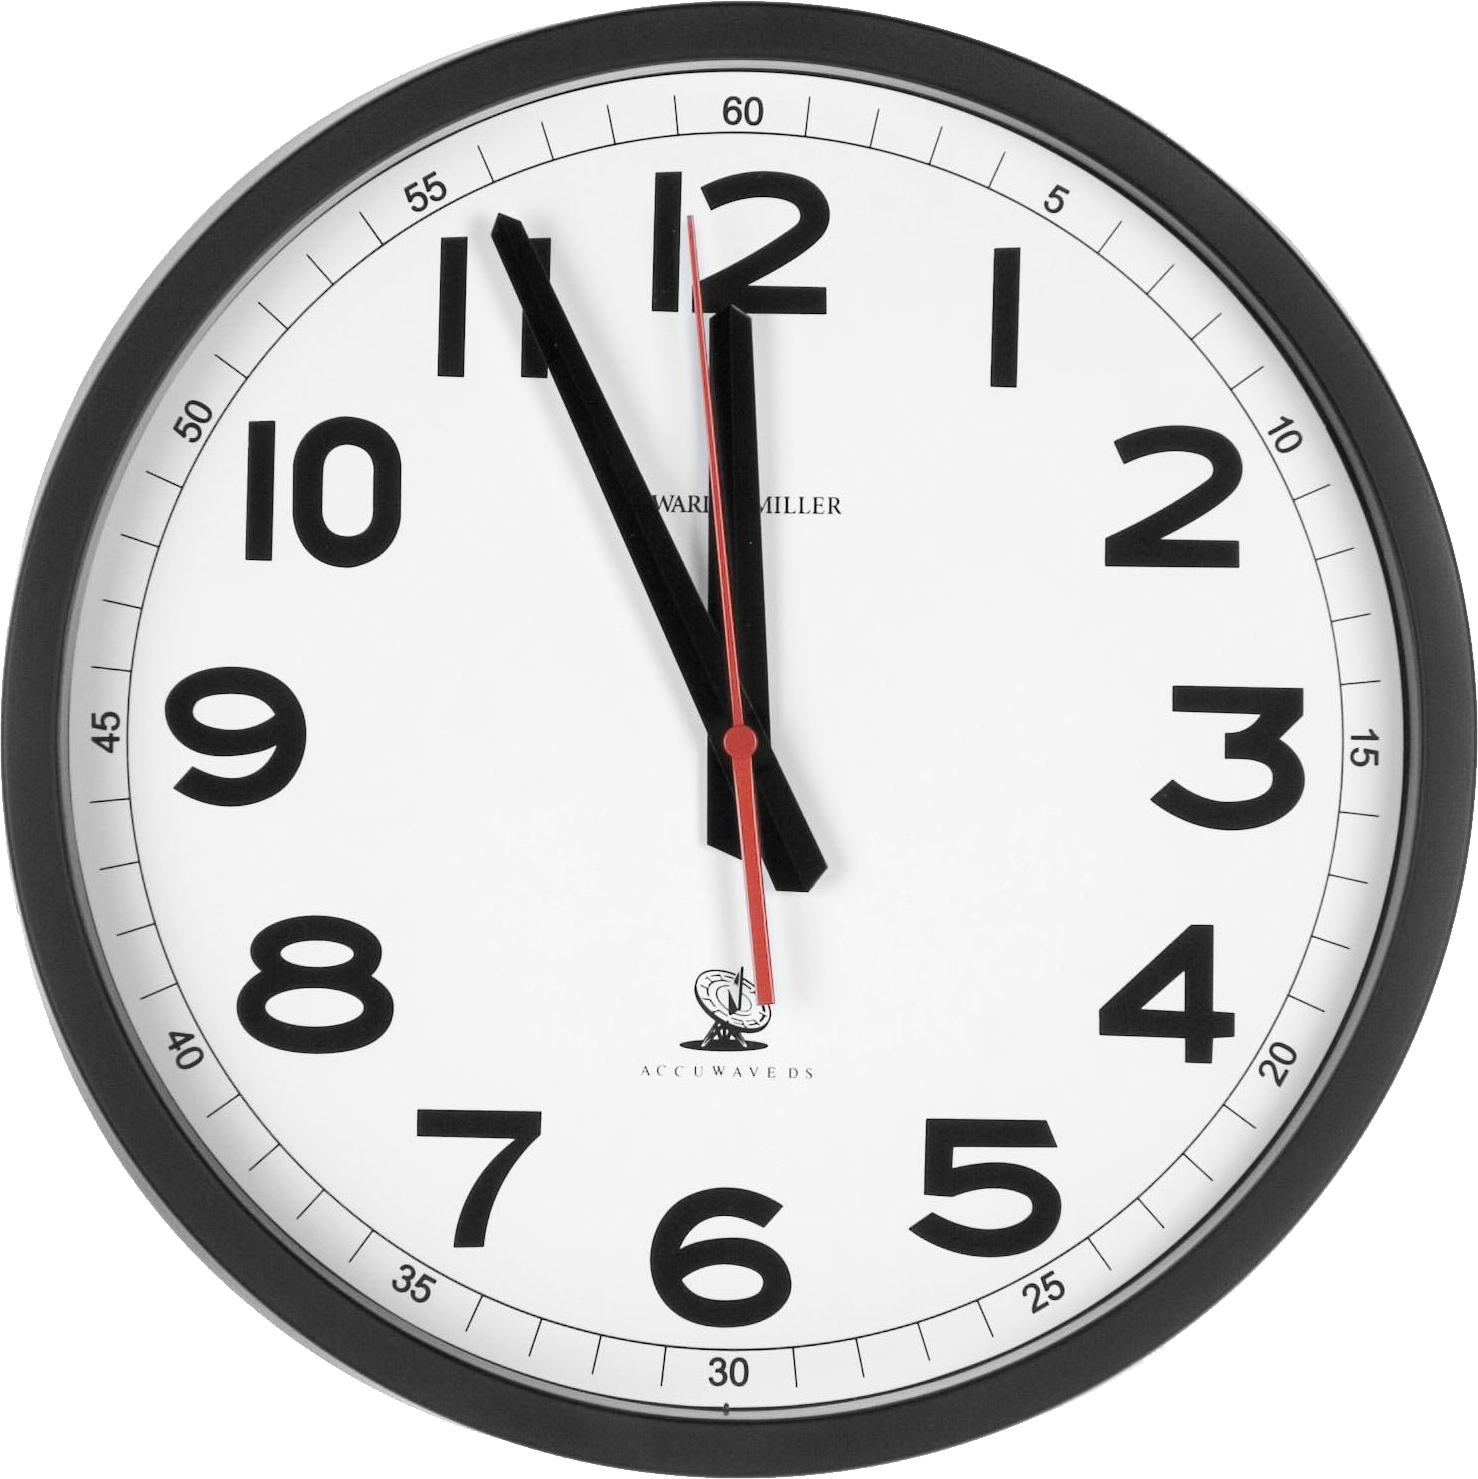 Png stopwatch image . Clock clipart transparent background